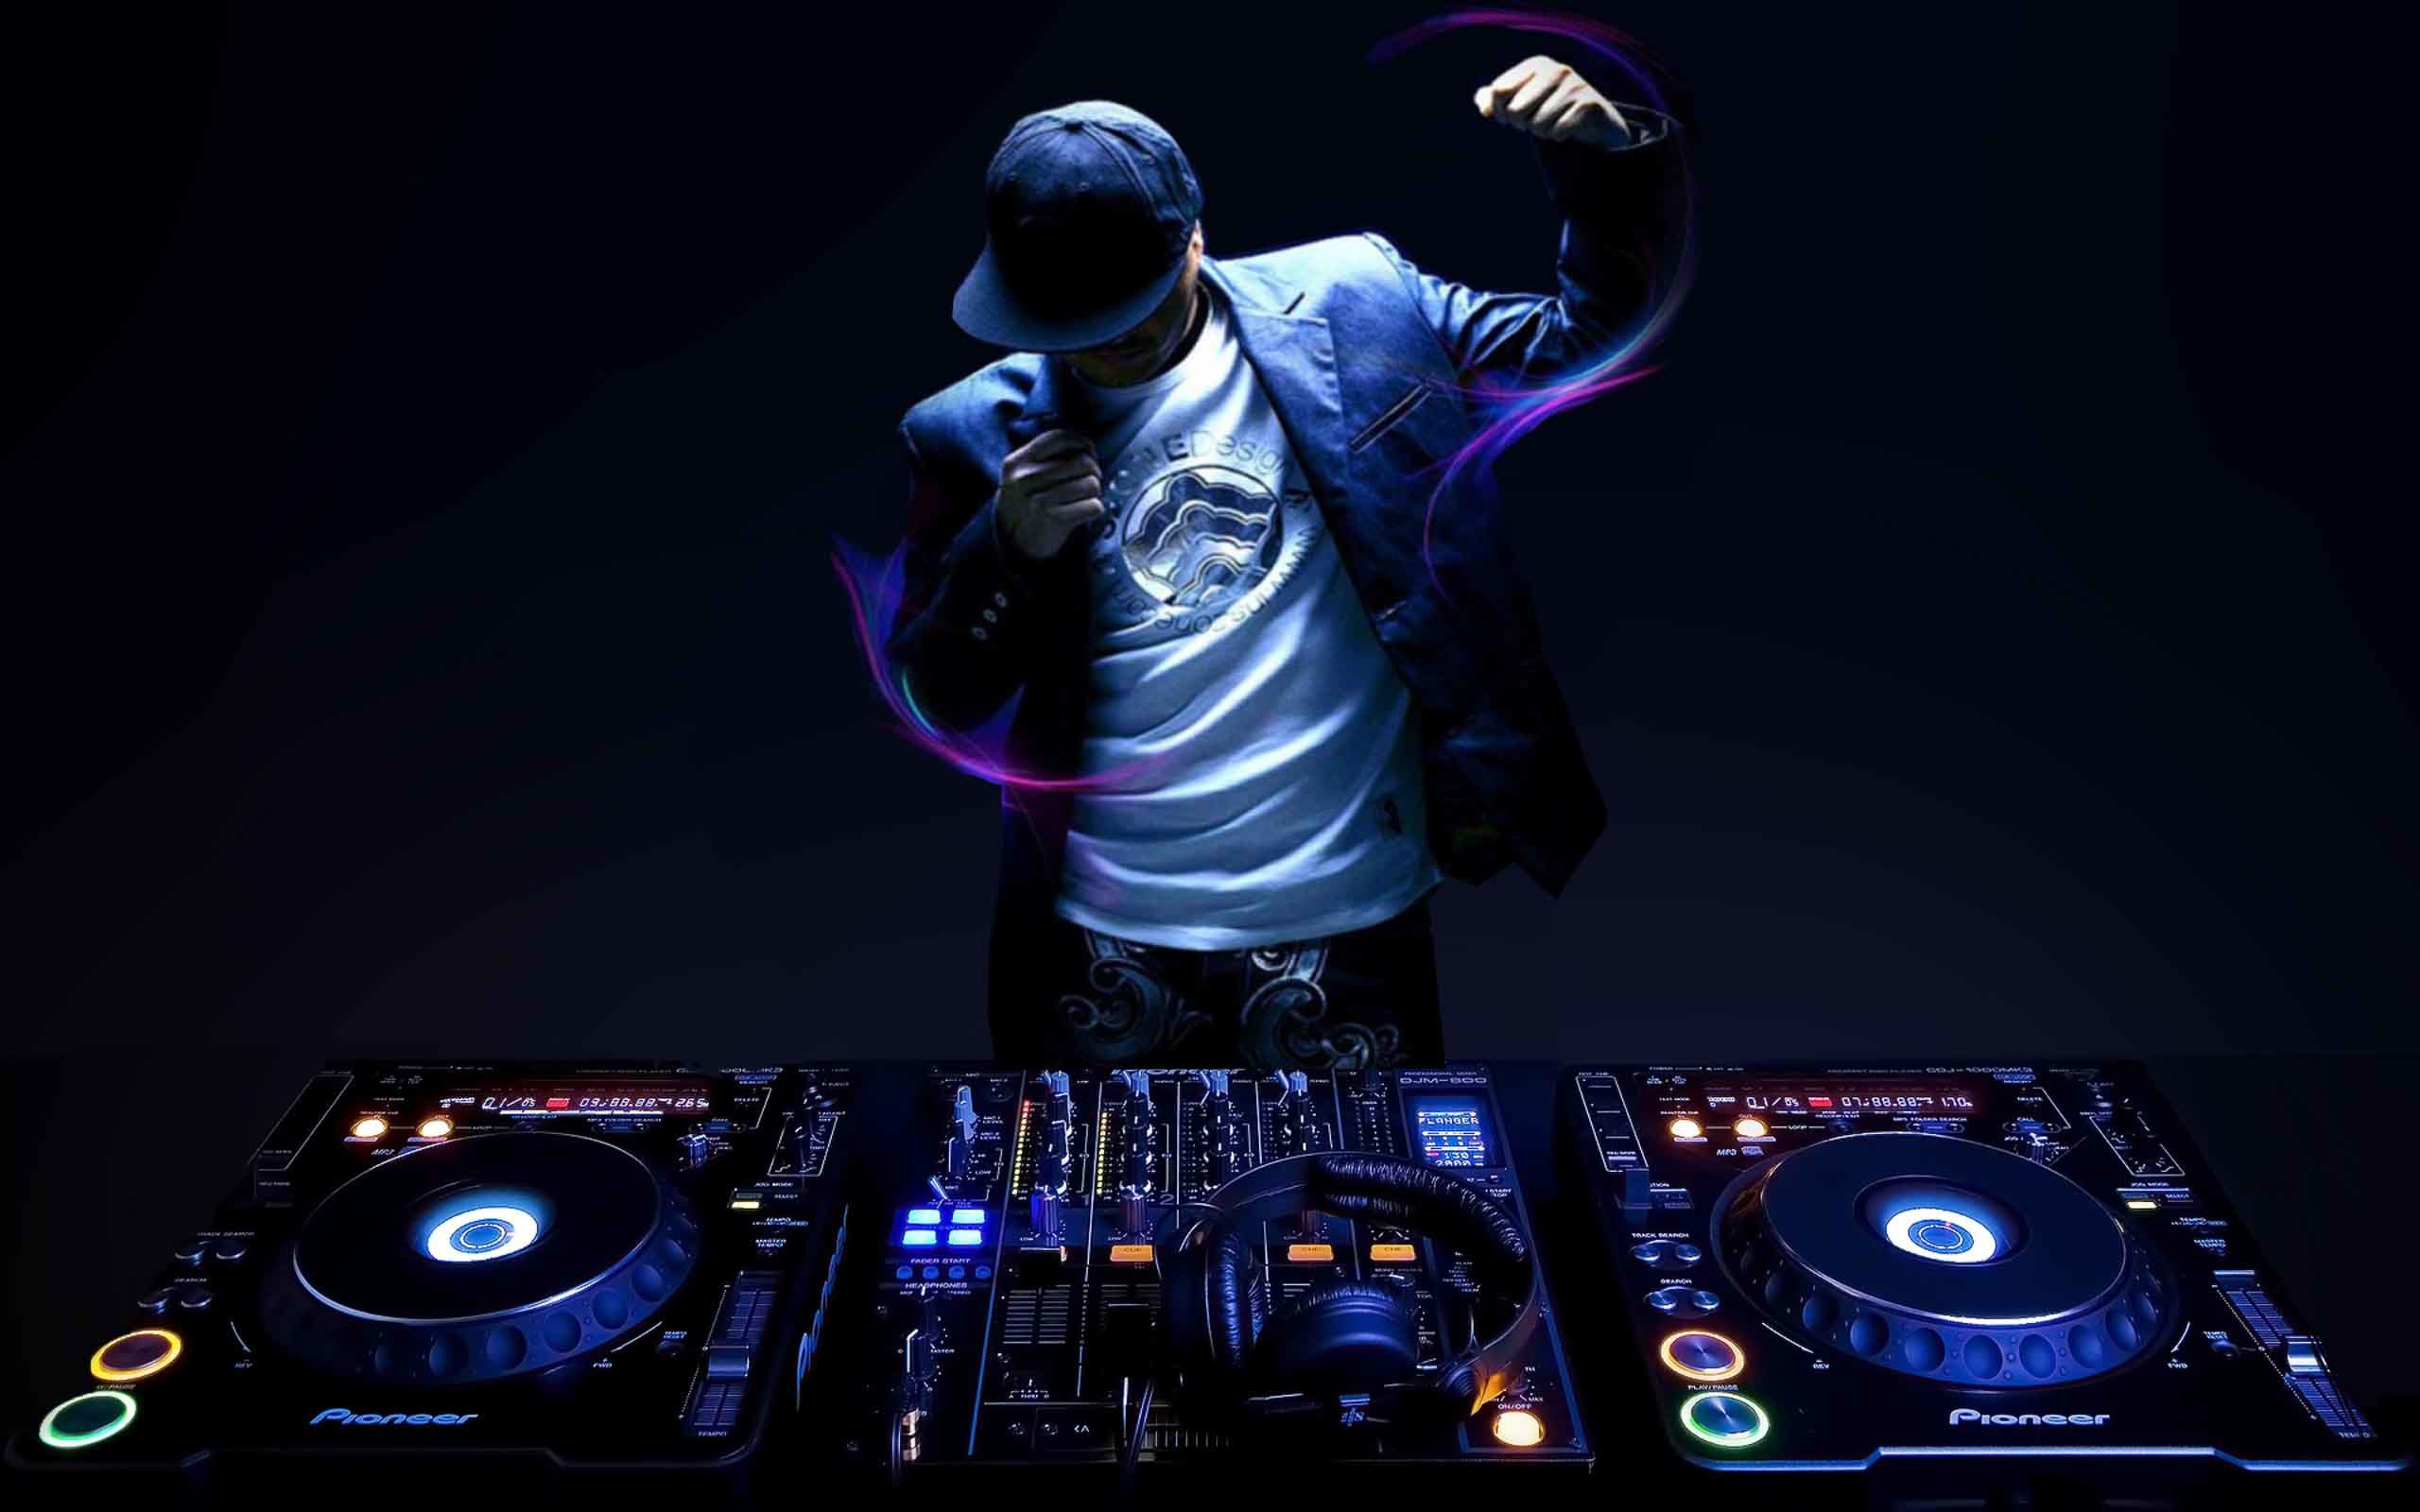 DJ Music Latest HD Wallpapers Free Download | HD Free Wallpapers .